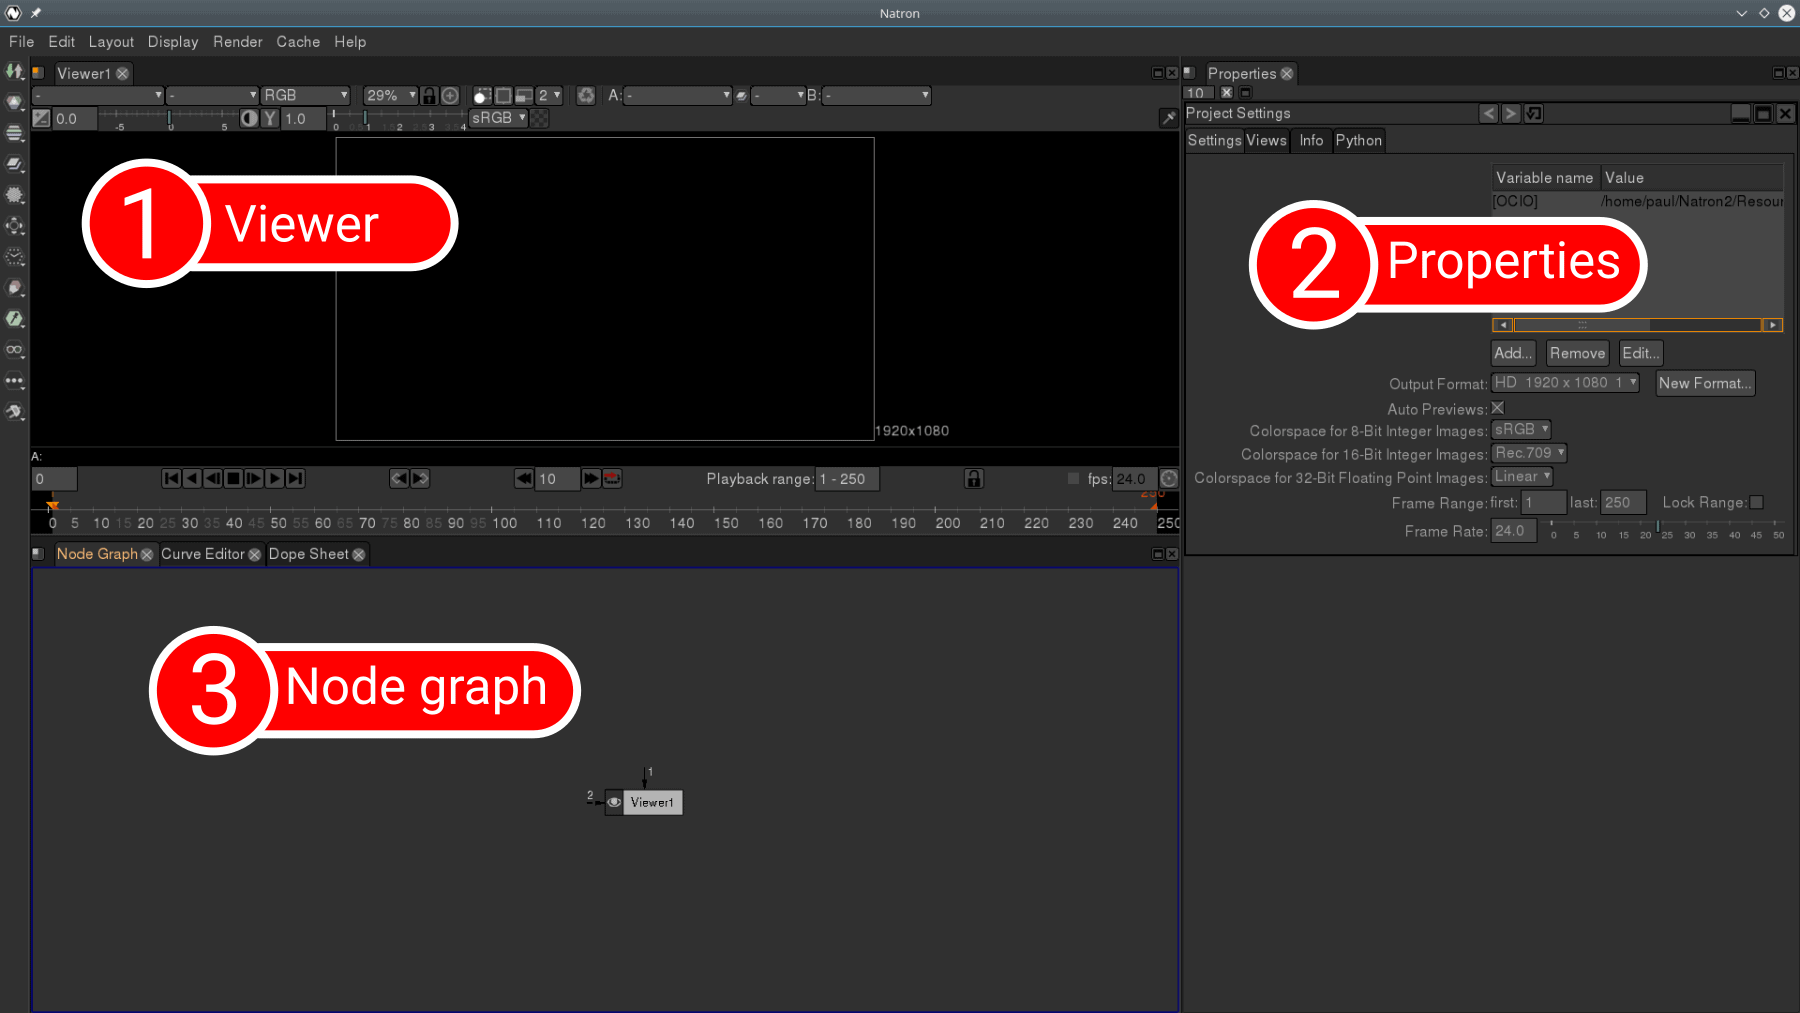 Natron's default layout: (1) Top left, viewer preview pane; (2) right, node properties; (3) bottom left, node graph.